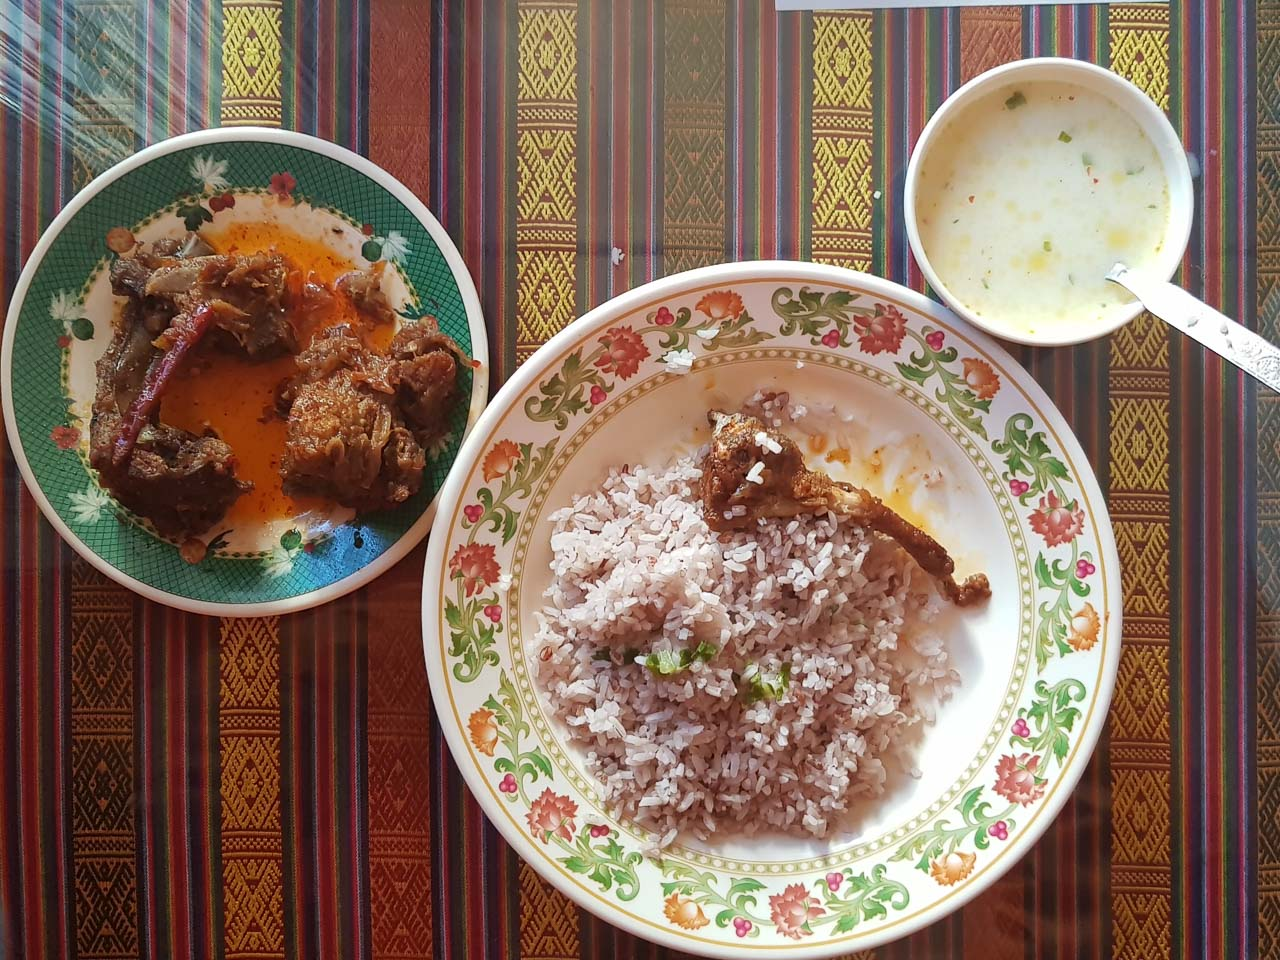 A Bhutanese meal. Top right is their datshi (creamy and cheesy iquid, sometimes with chillies, sometimes with potatoes), red rice, and meat. The meat is usually dried before anything else is done to it